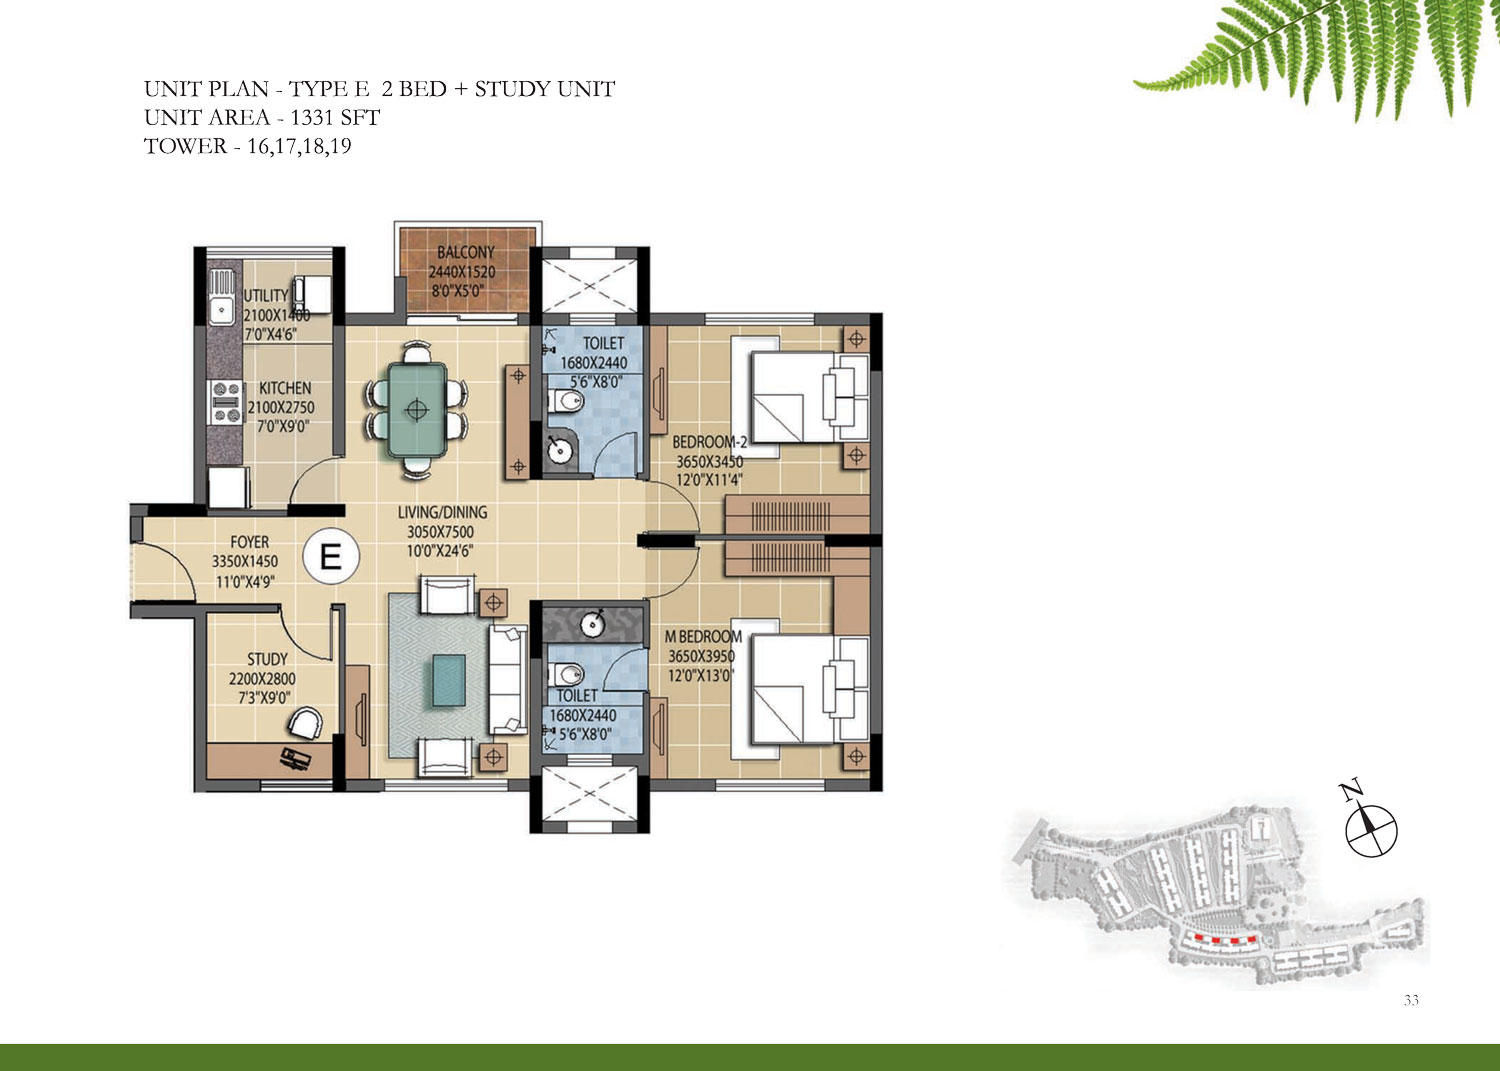 Type E - 2 Bed - 1331 Sq Ft